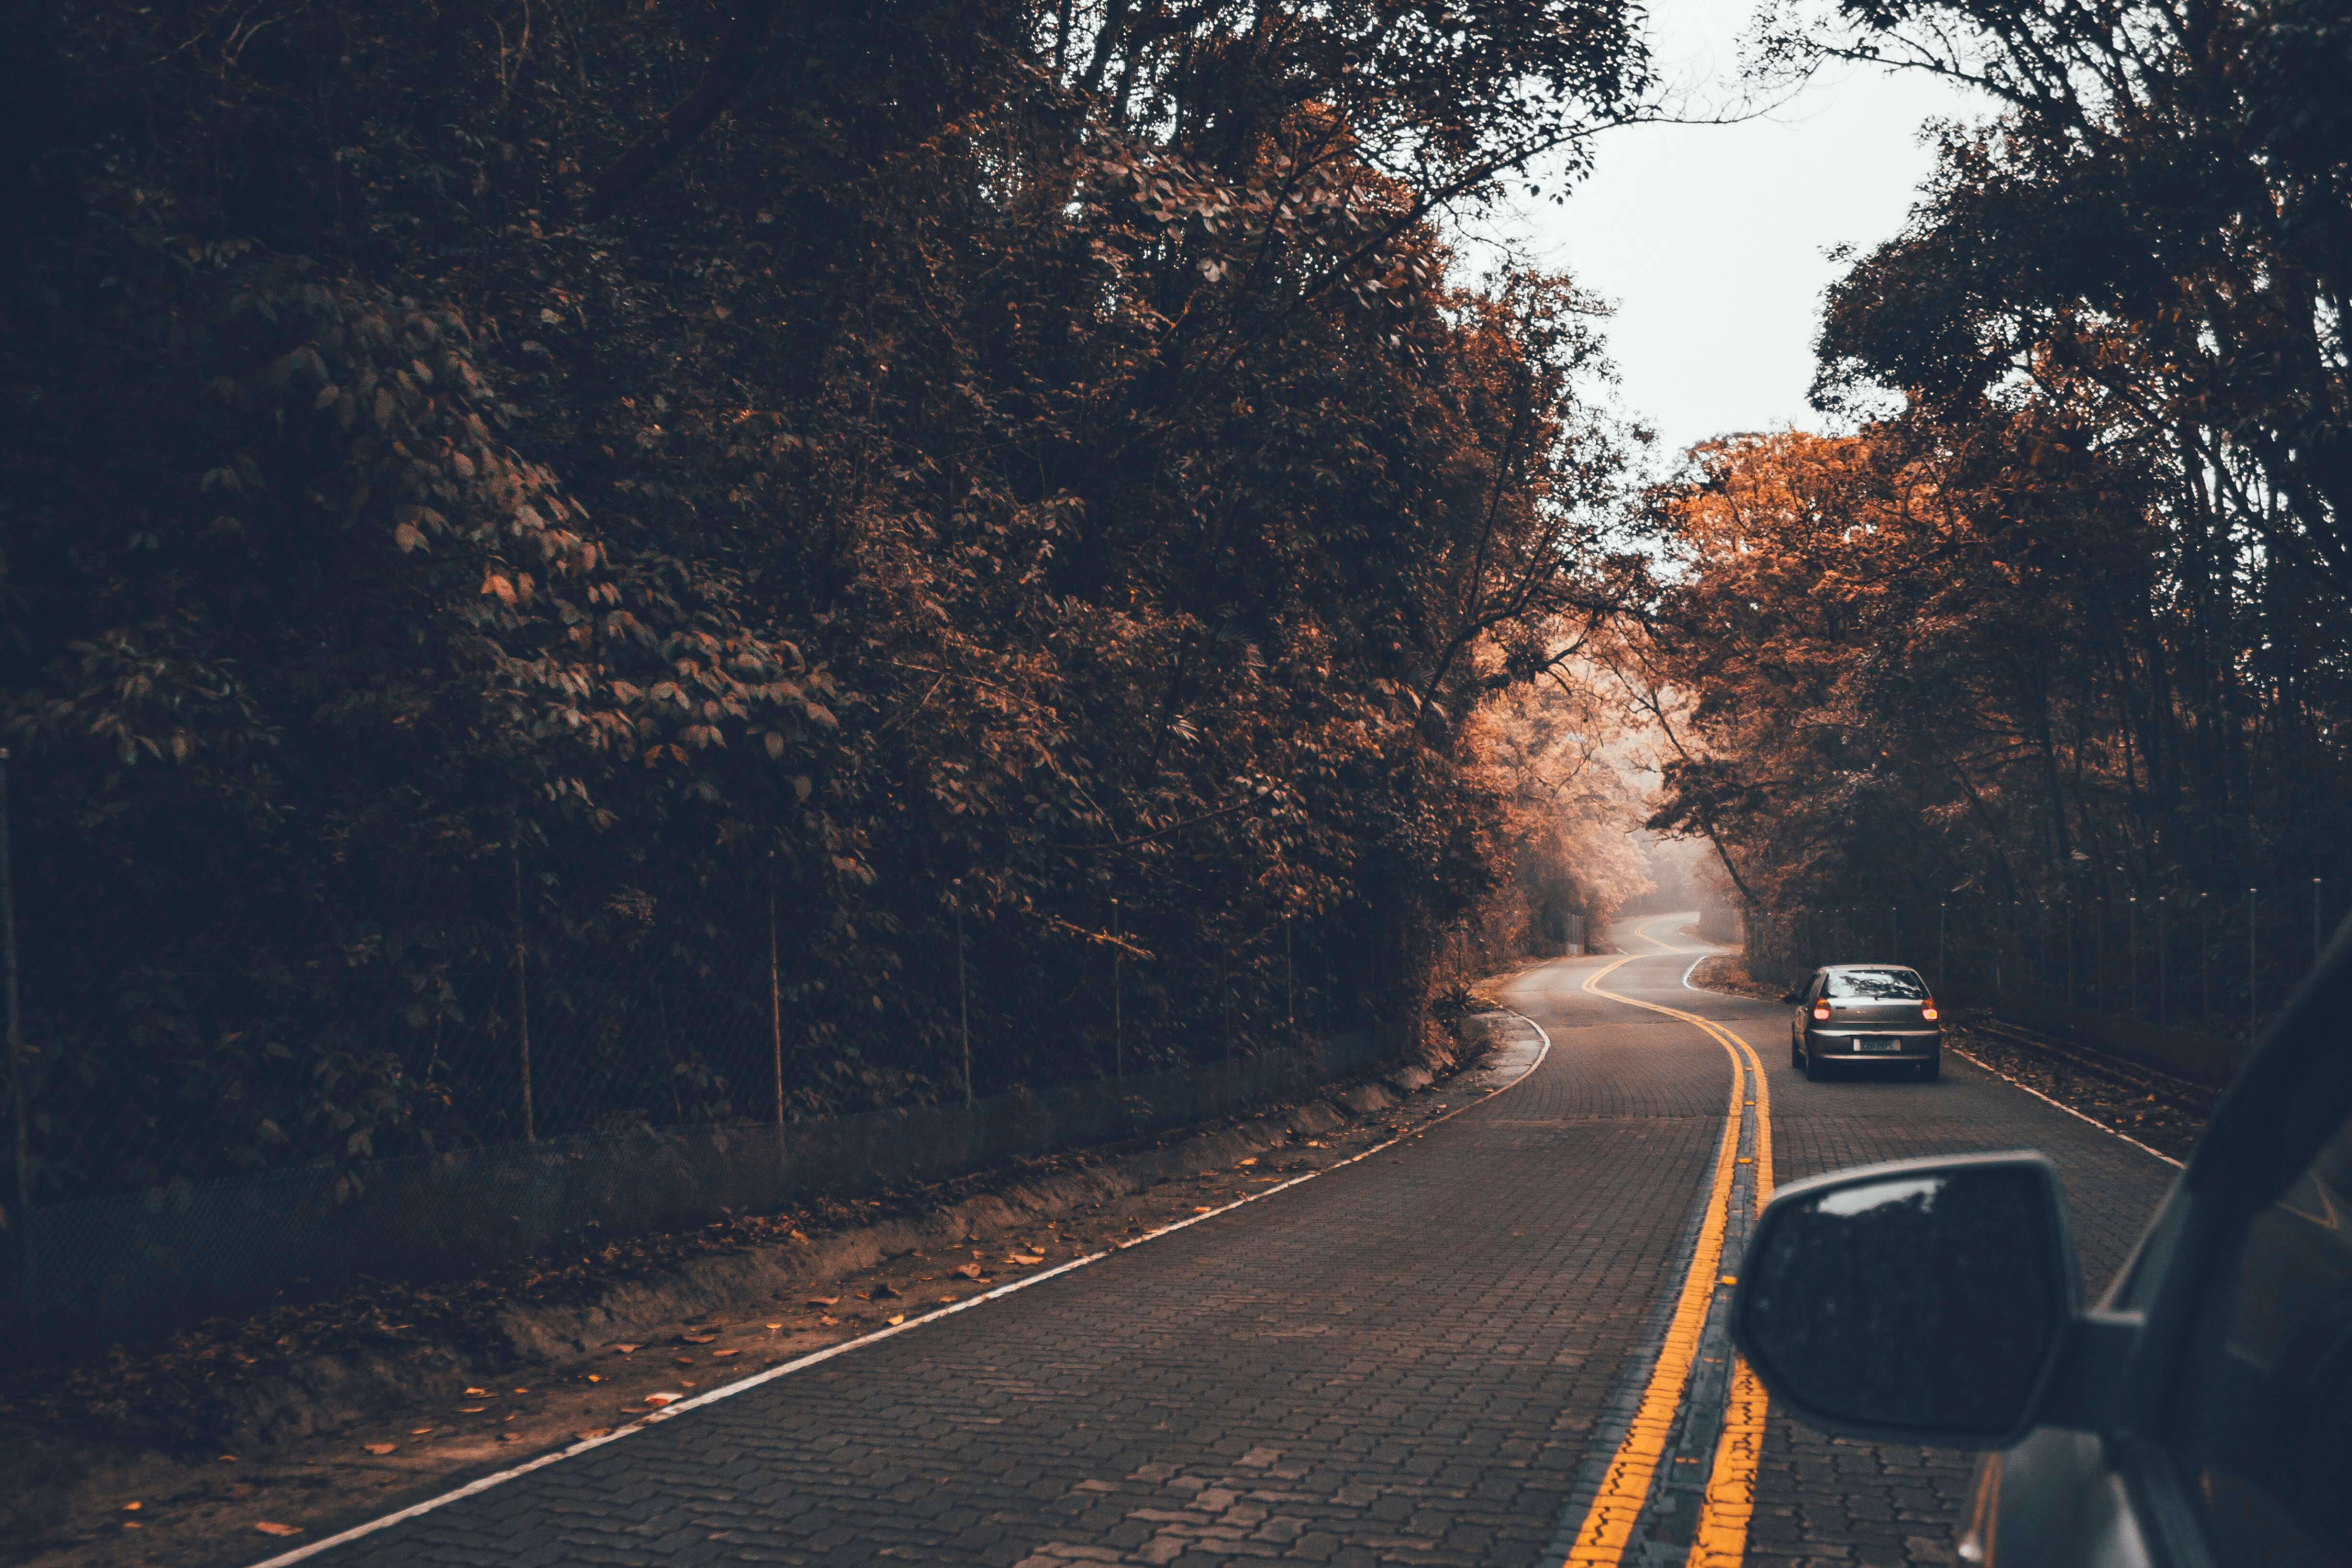 third party car insurance might include travel support